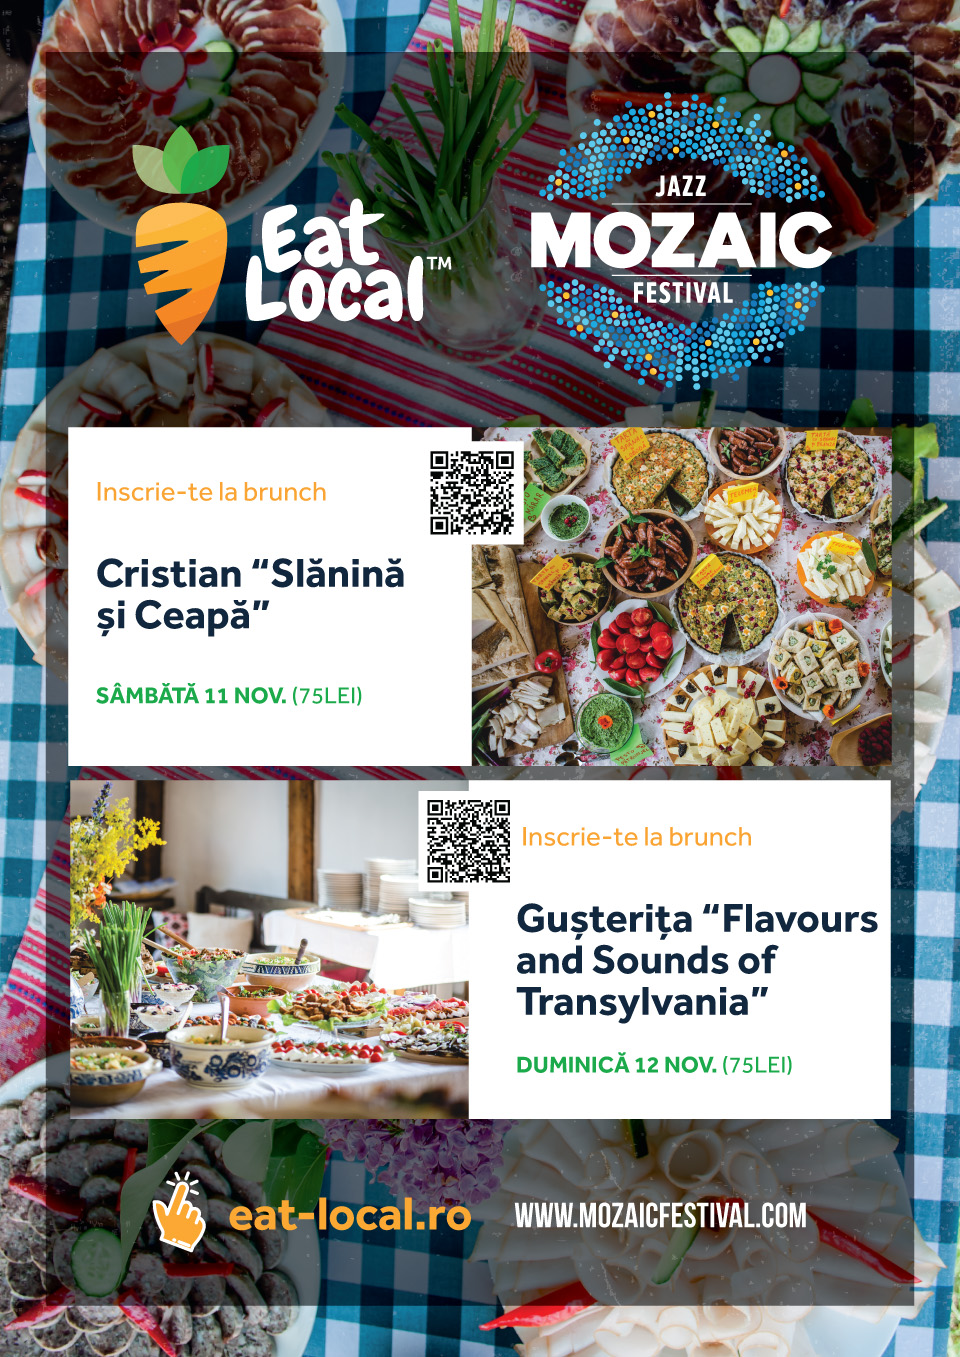 Eat Local la Mozaic Jazz Festival